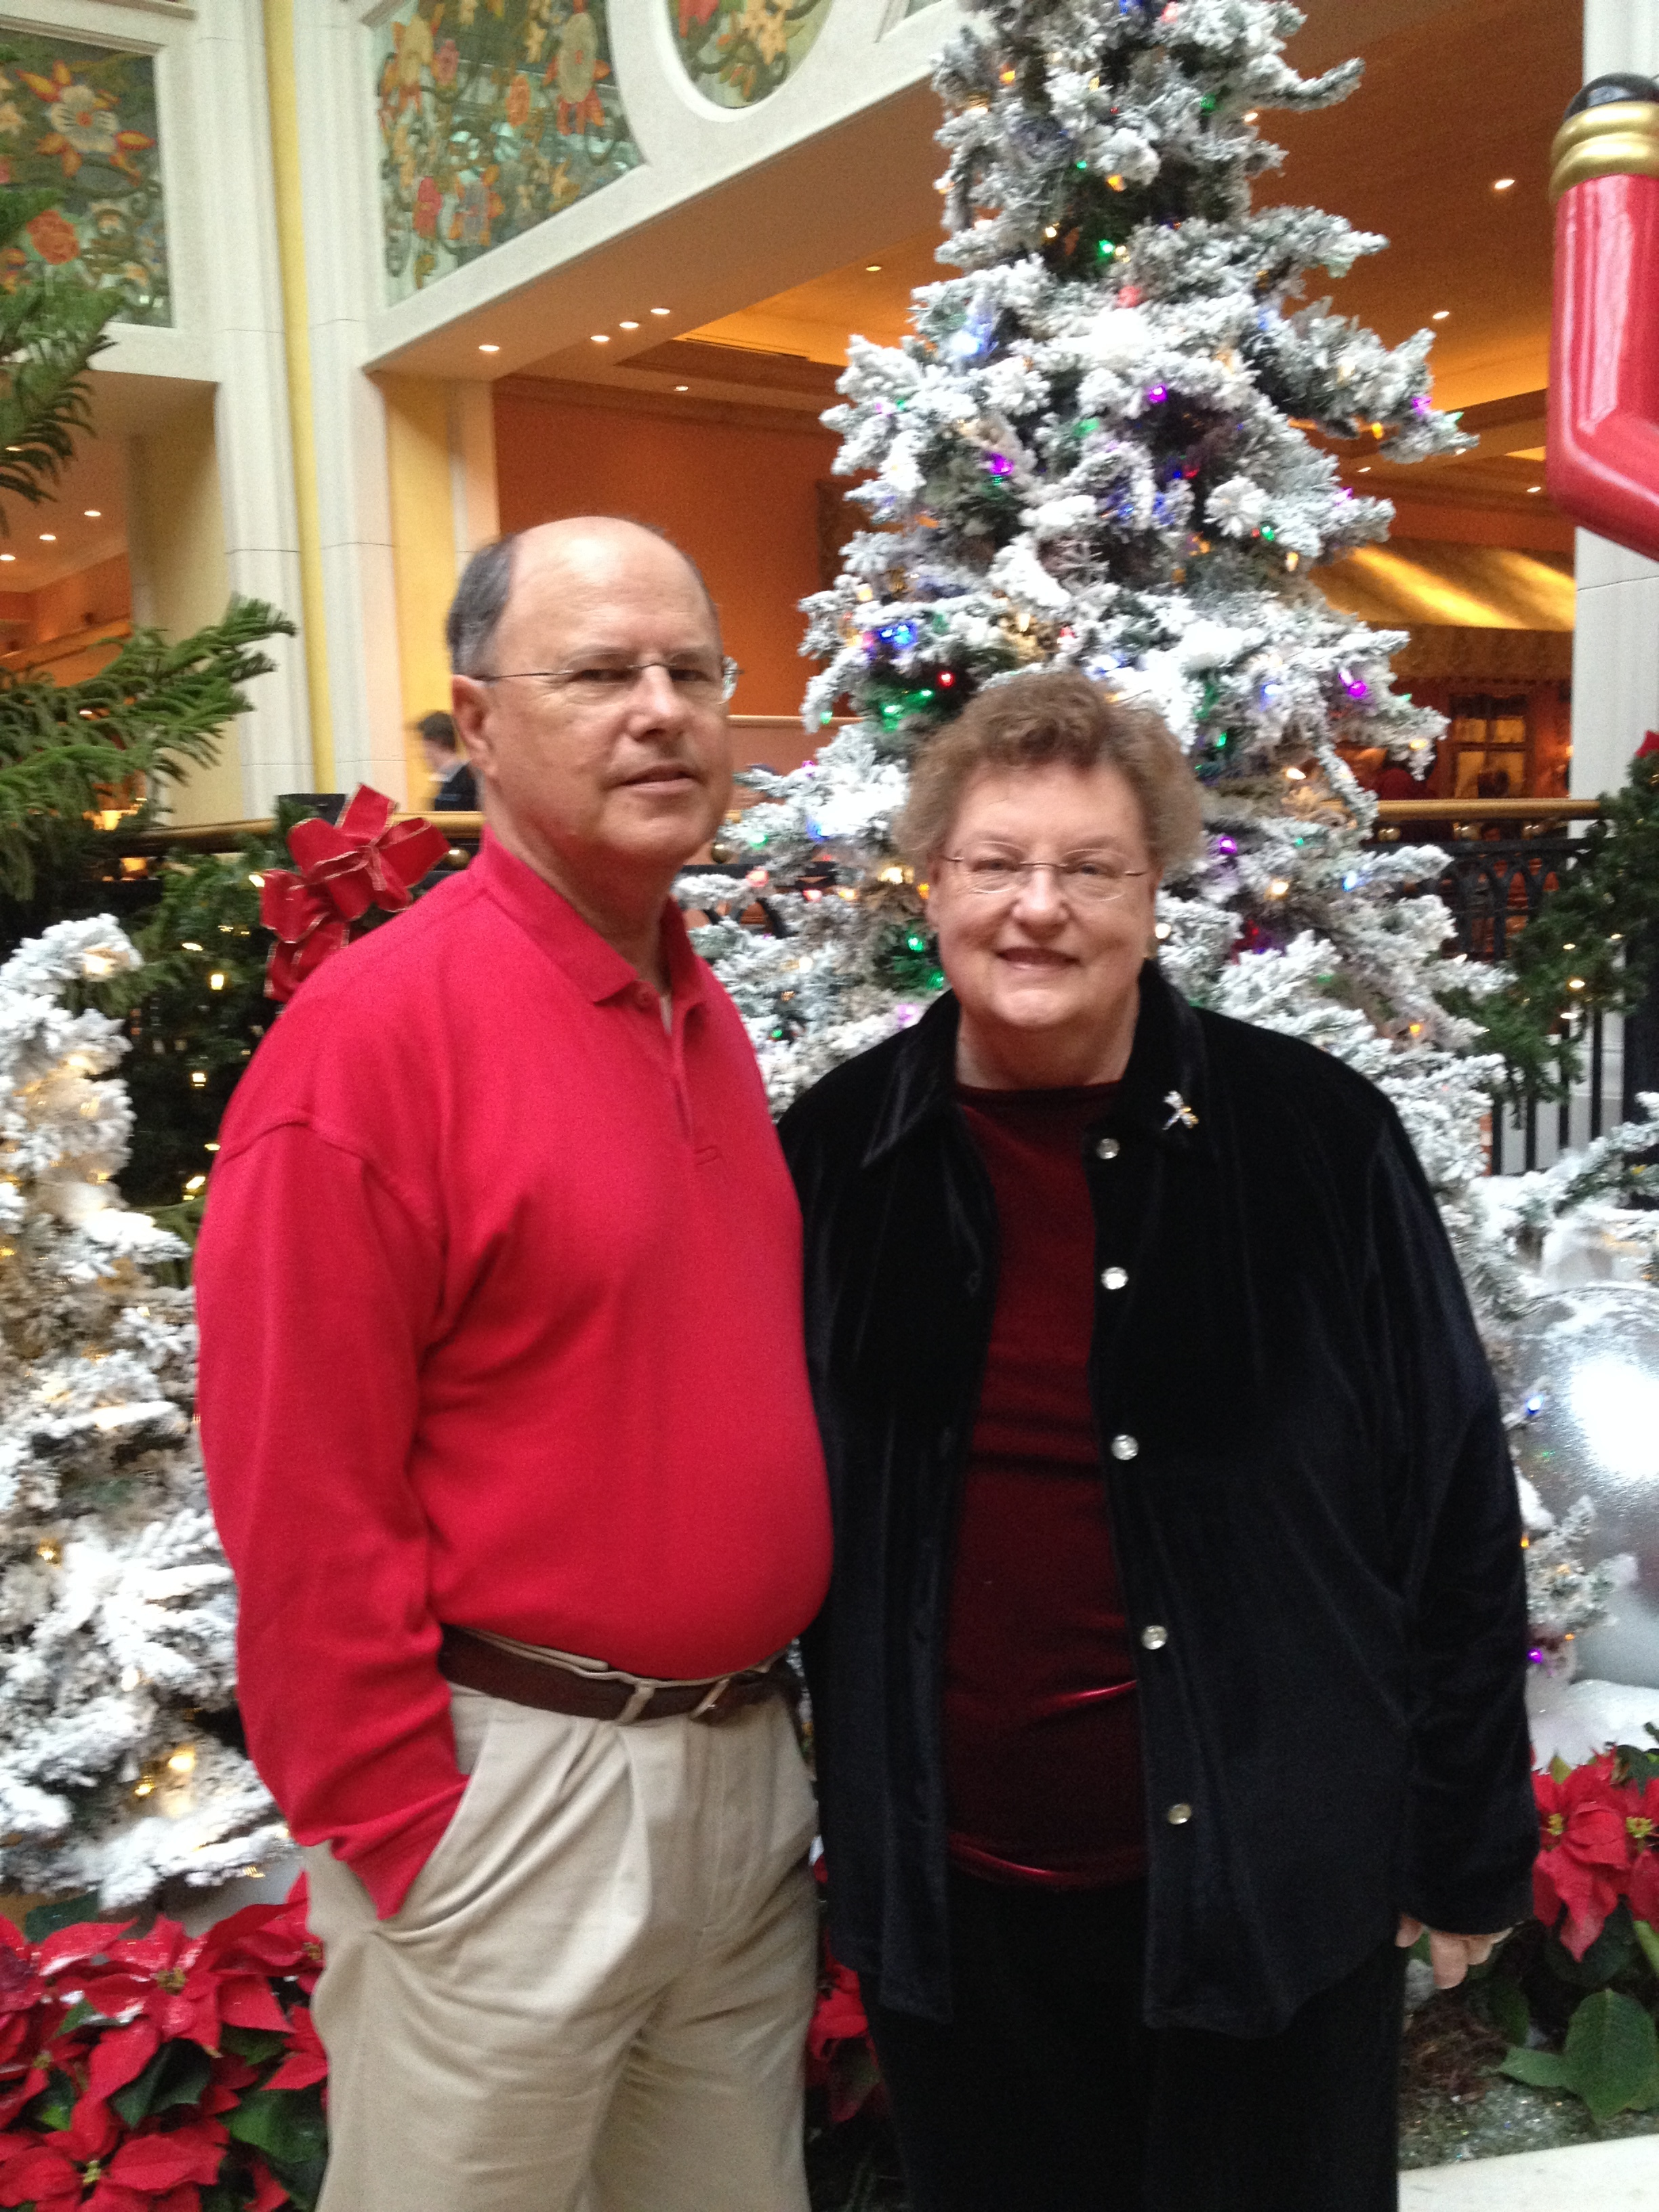 Dave (left) and Patricia (right) Hensley